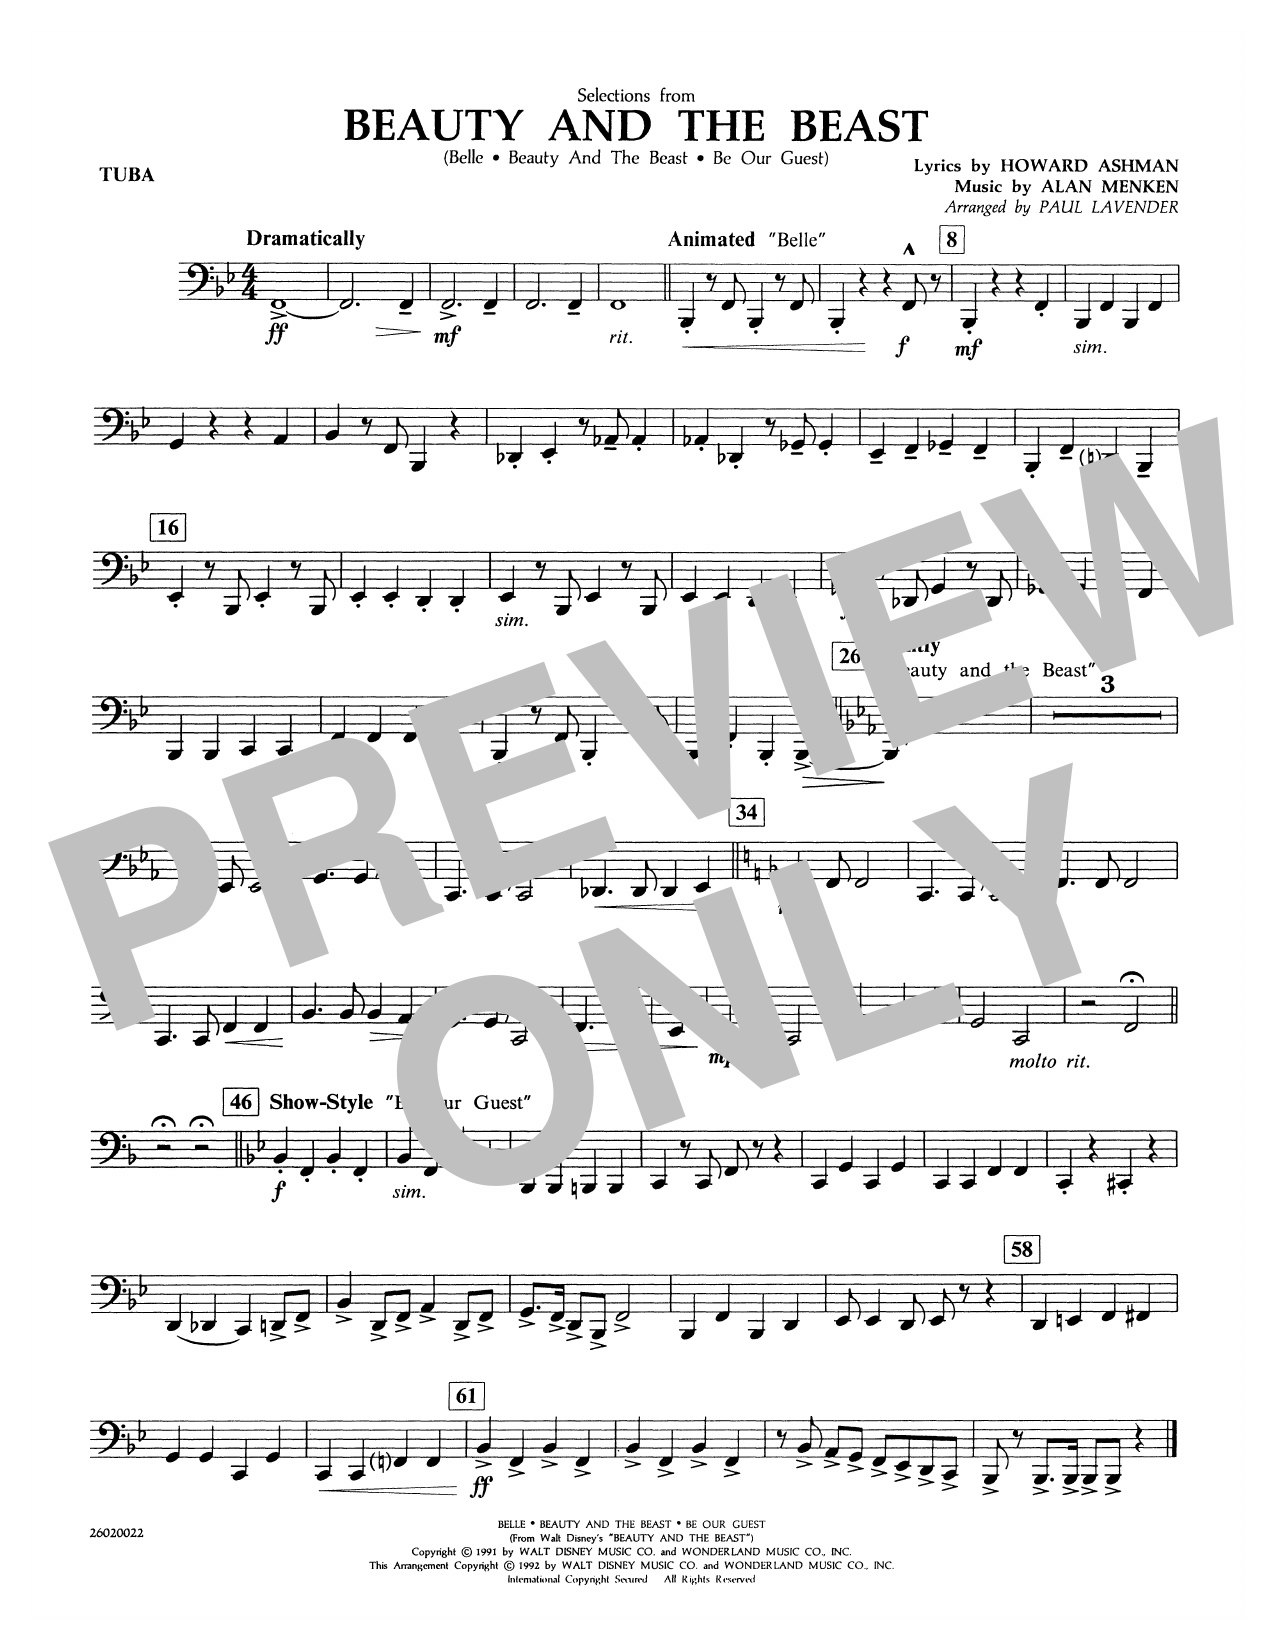 Paul Lavender Selections from Beauty and the Beast - Tuba sheet music notes and chords. Download Printable PDF.